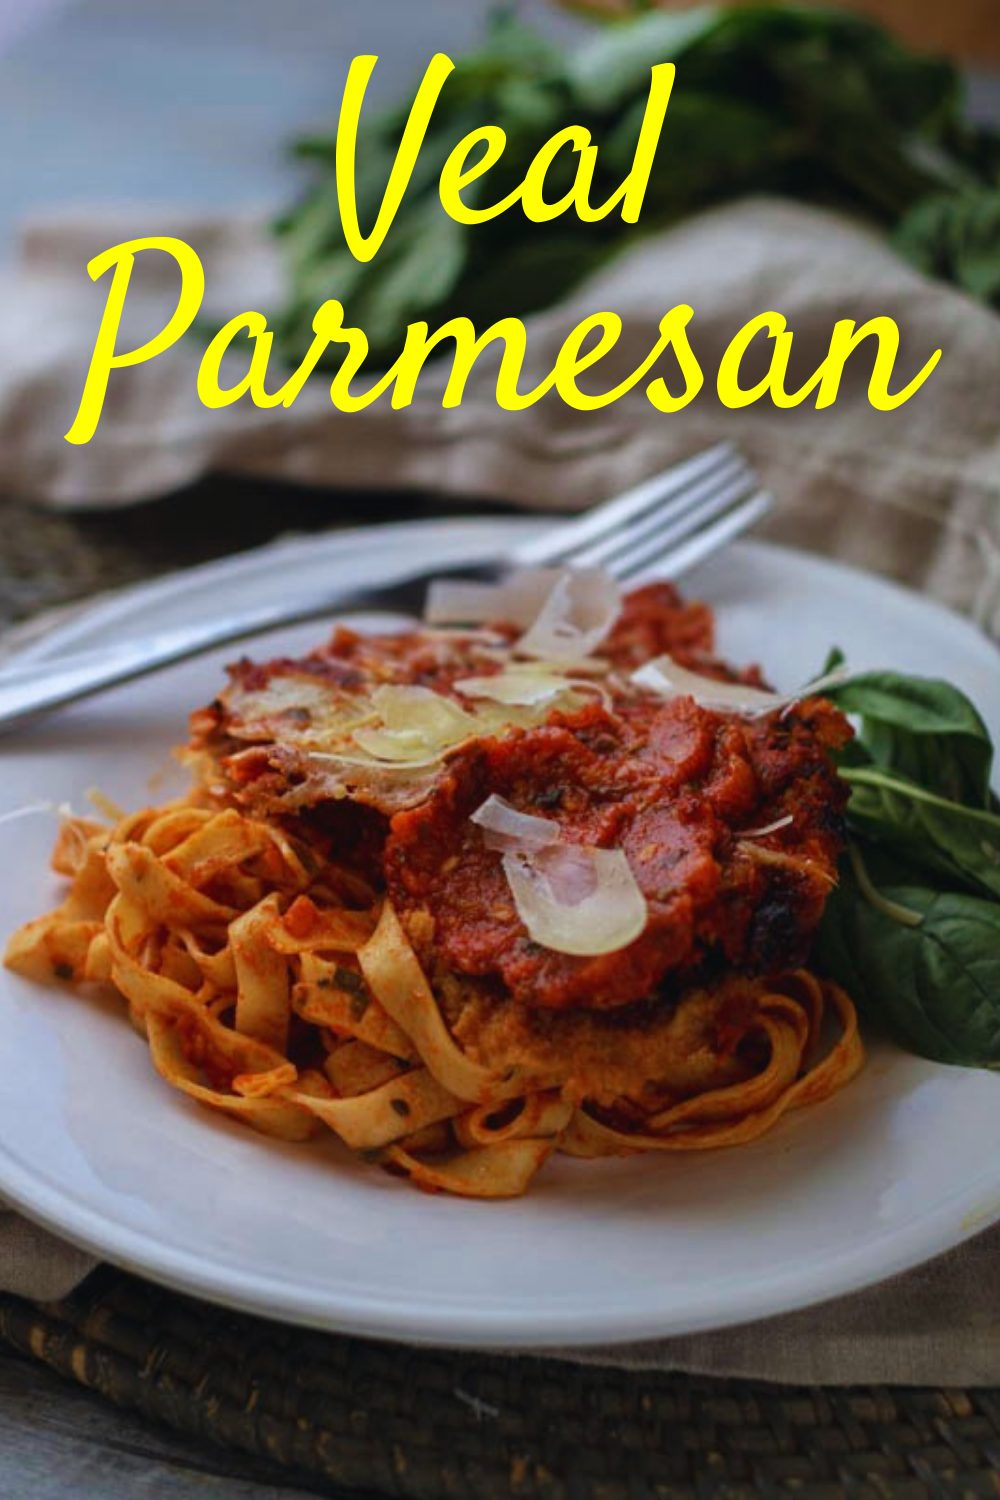 This Veal Parmesan recipe is bursting with Italian flavor and comes together quite easily, including the breaded veal cutlets, the marinara sauce, and the finished product, complete with creamy mozzarella and delicious parmesan. Full recipe and tips available on our site!! #vealparmesan #vealrecipes #italianrecipes #homemade #nymelrosefamily via @jennymelrose